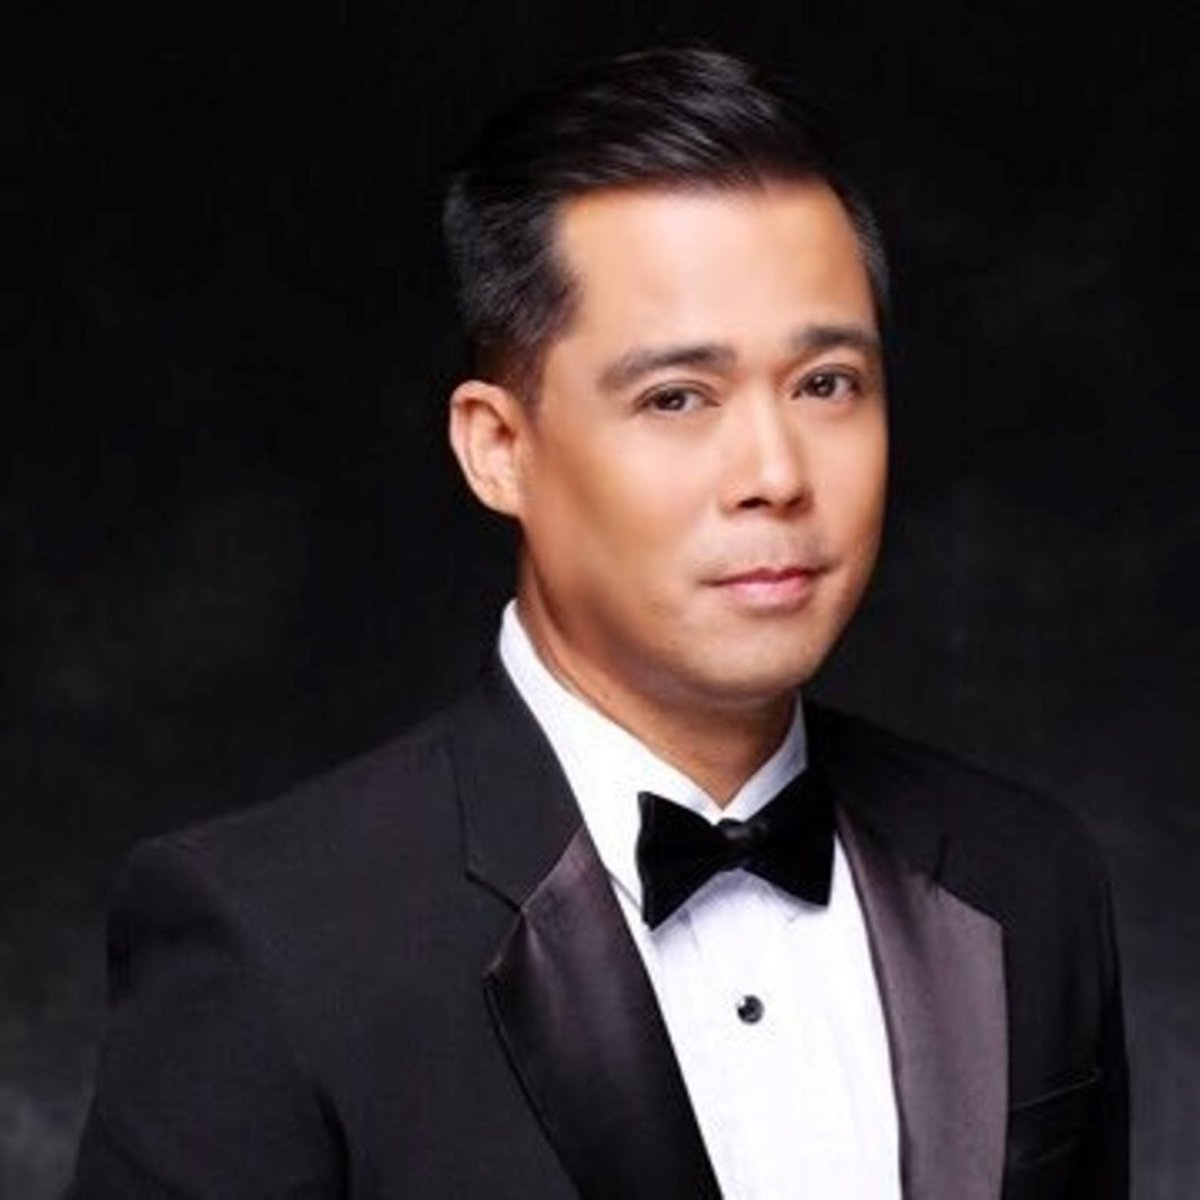 Dingdong Avanzado was part of his high school's all-male singing group that eventually produced some of Manila's best entertainers. He has performed in concerts, both in the Philippines and abroad. He is now married to a female recording artist.